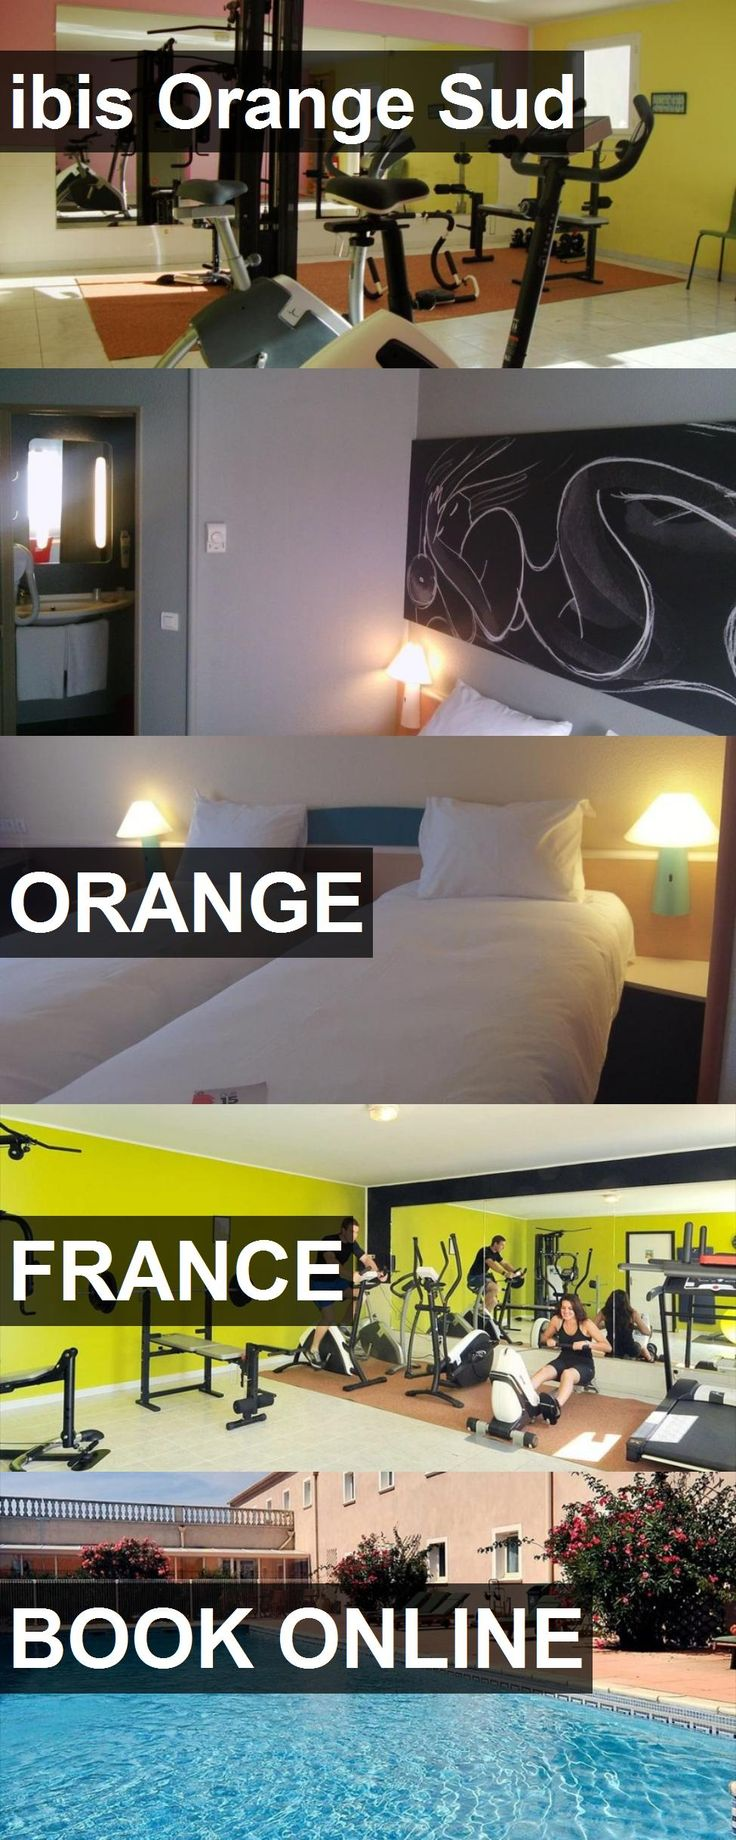 Hotel ibis Orange Sud in Orange, France. For more information, photos, reviews and best prices please follow the link. #France #Orange #hotel #travel #vacation